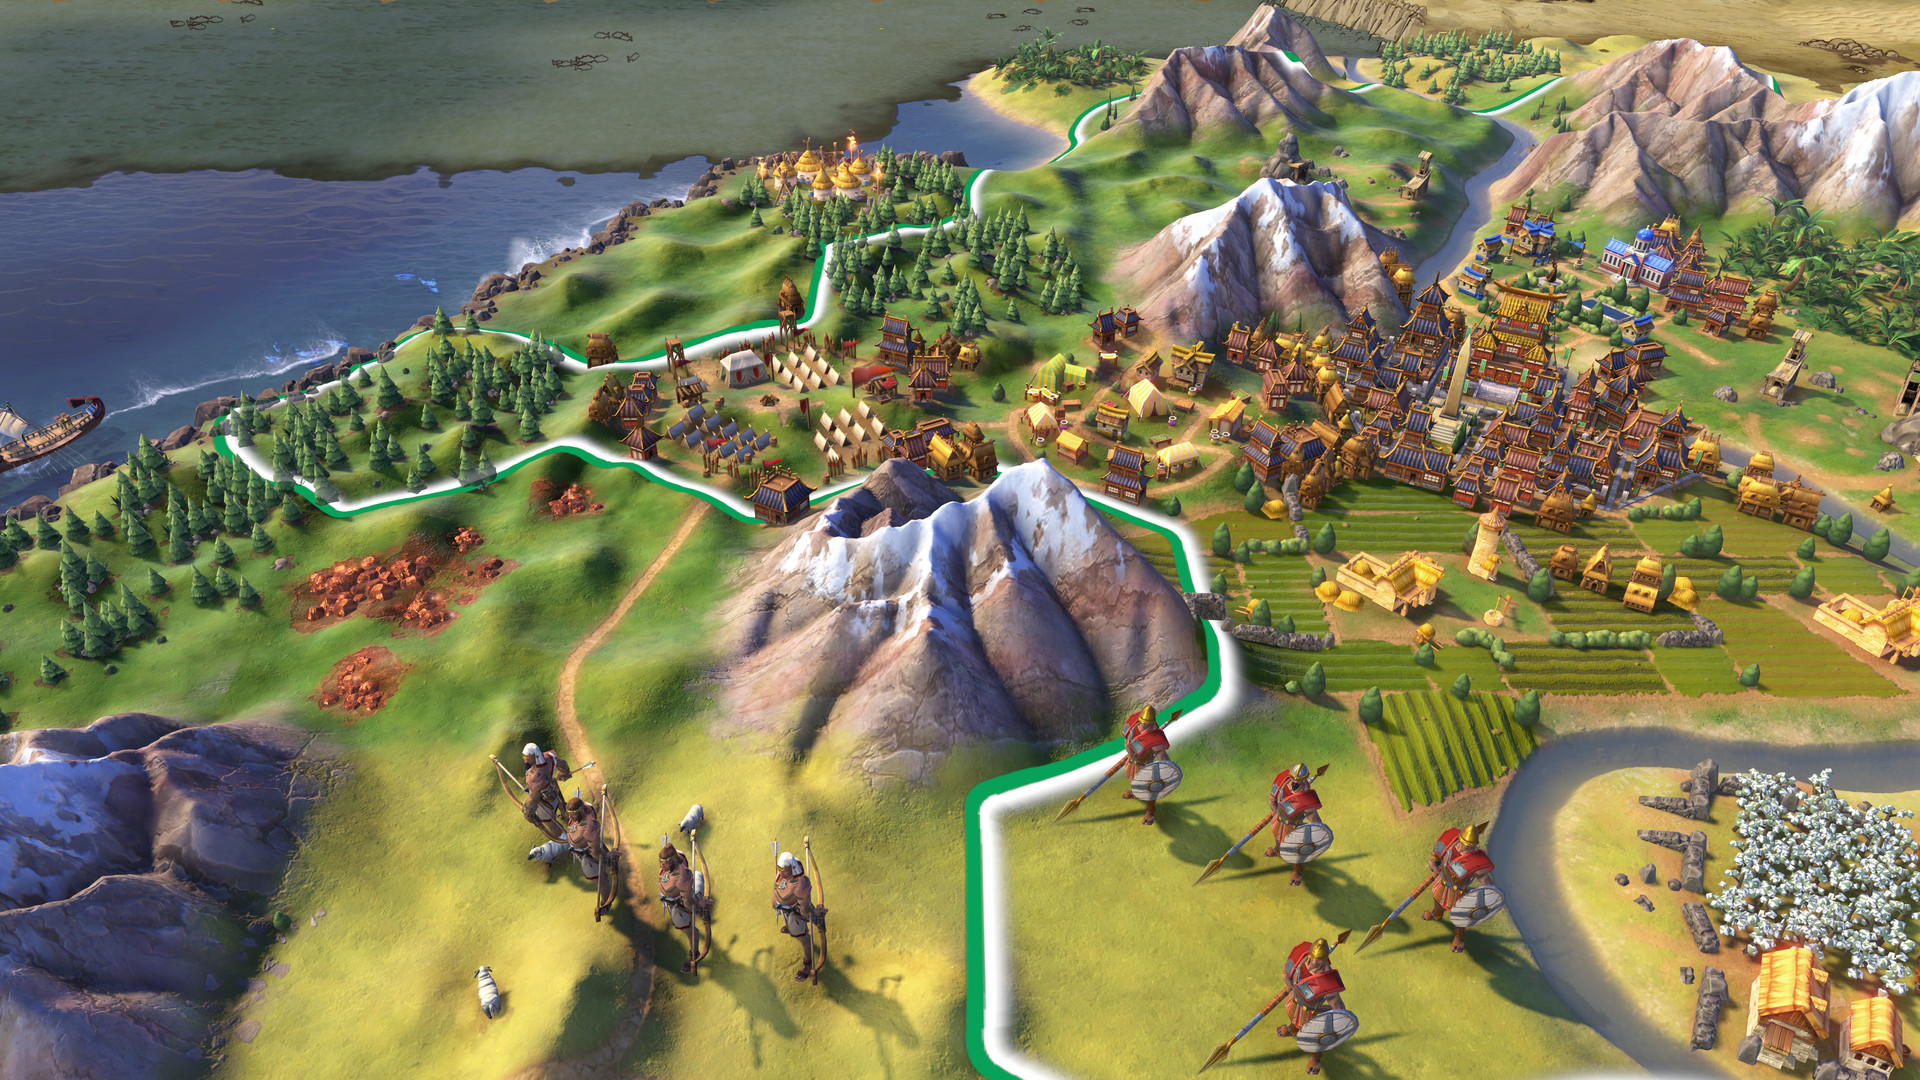 Free Games like Age of Empires - Best Age of Empires Alternative Games for Mac